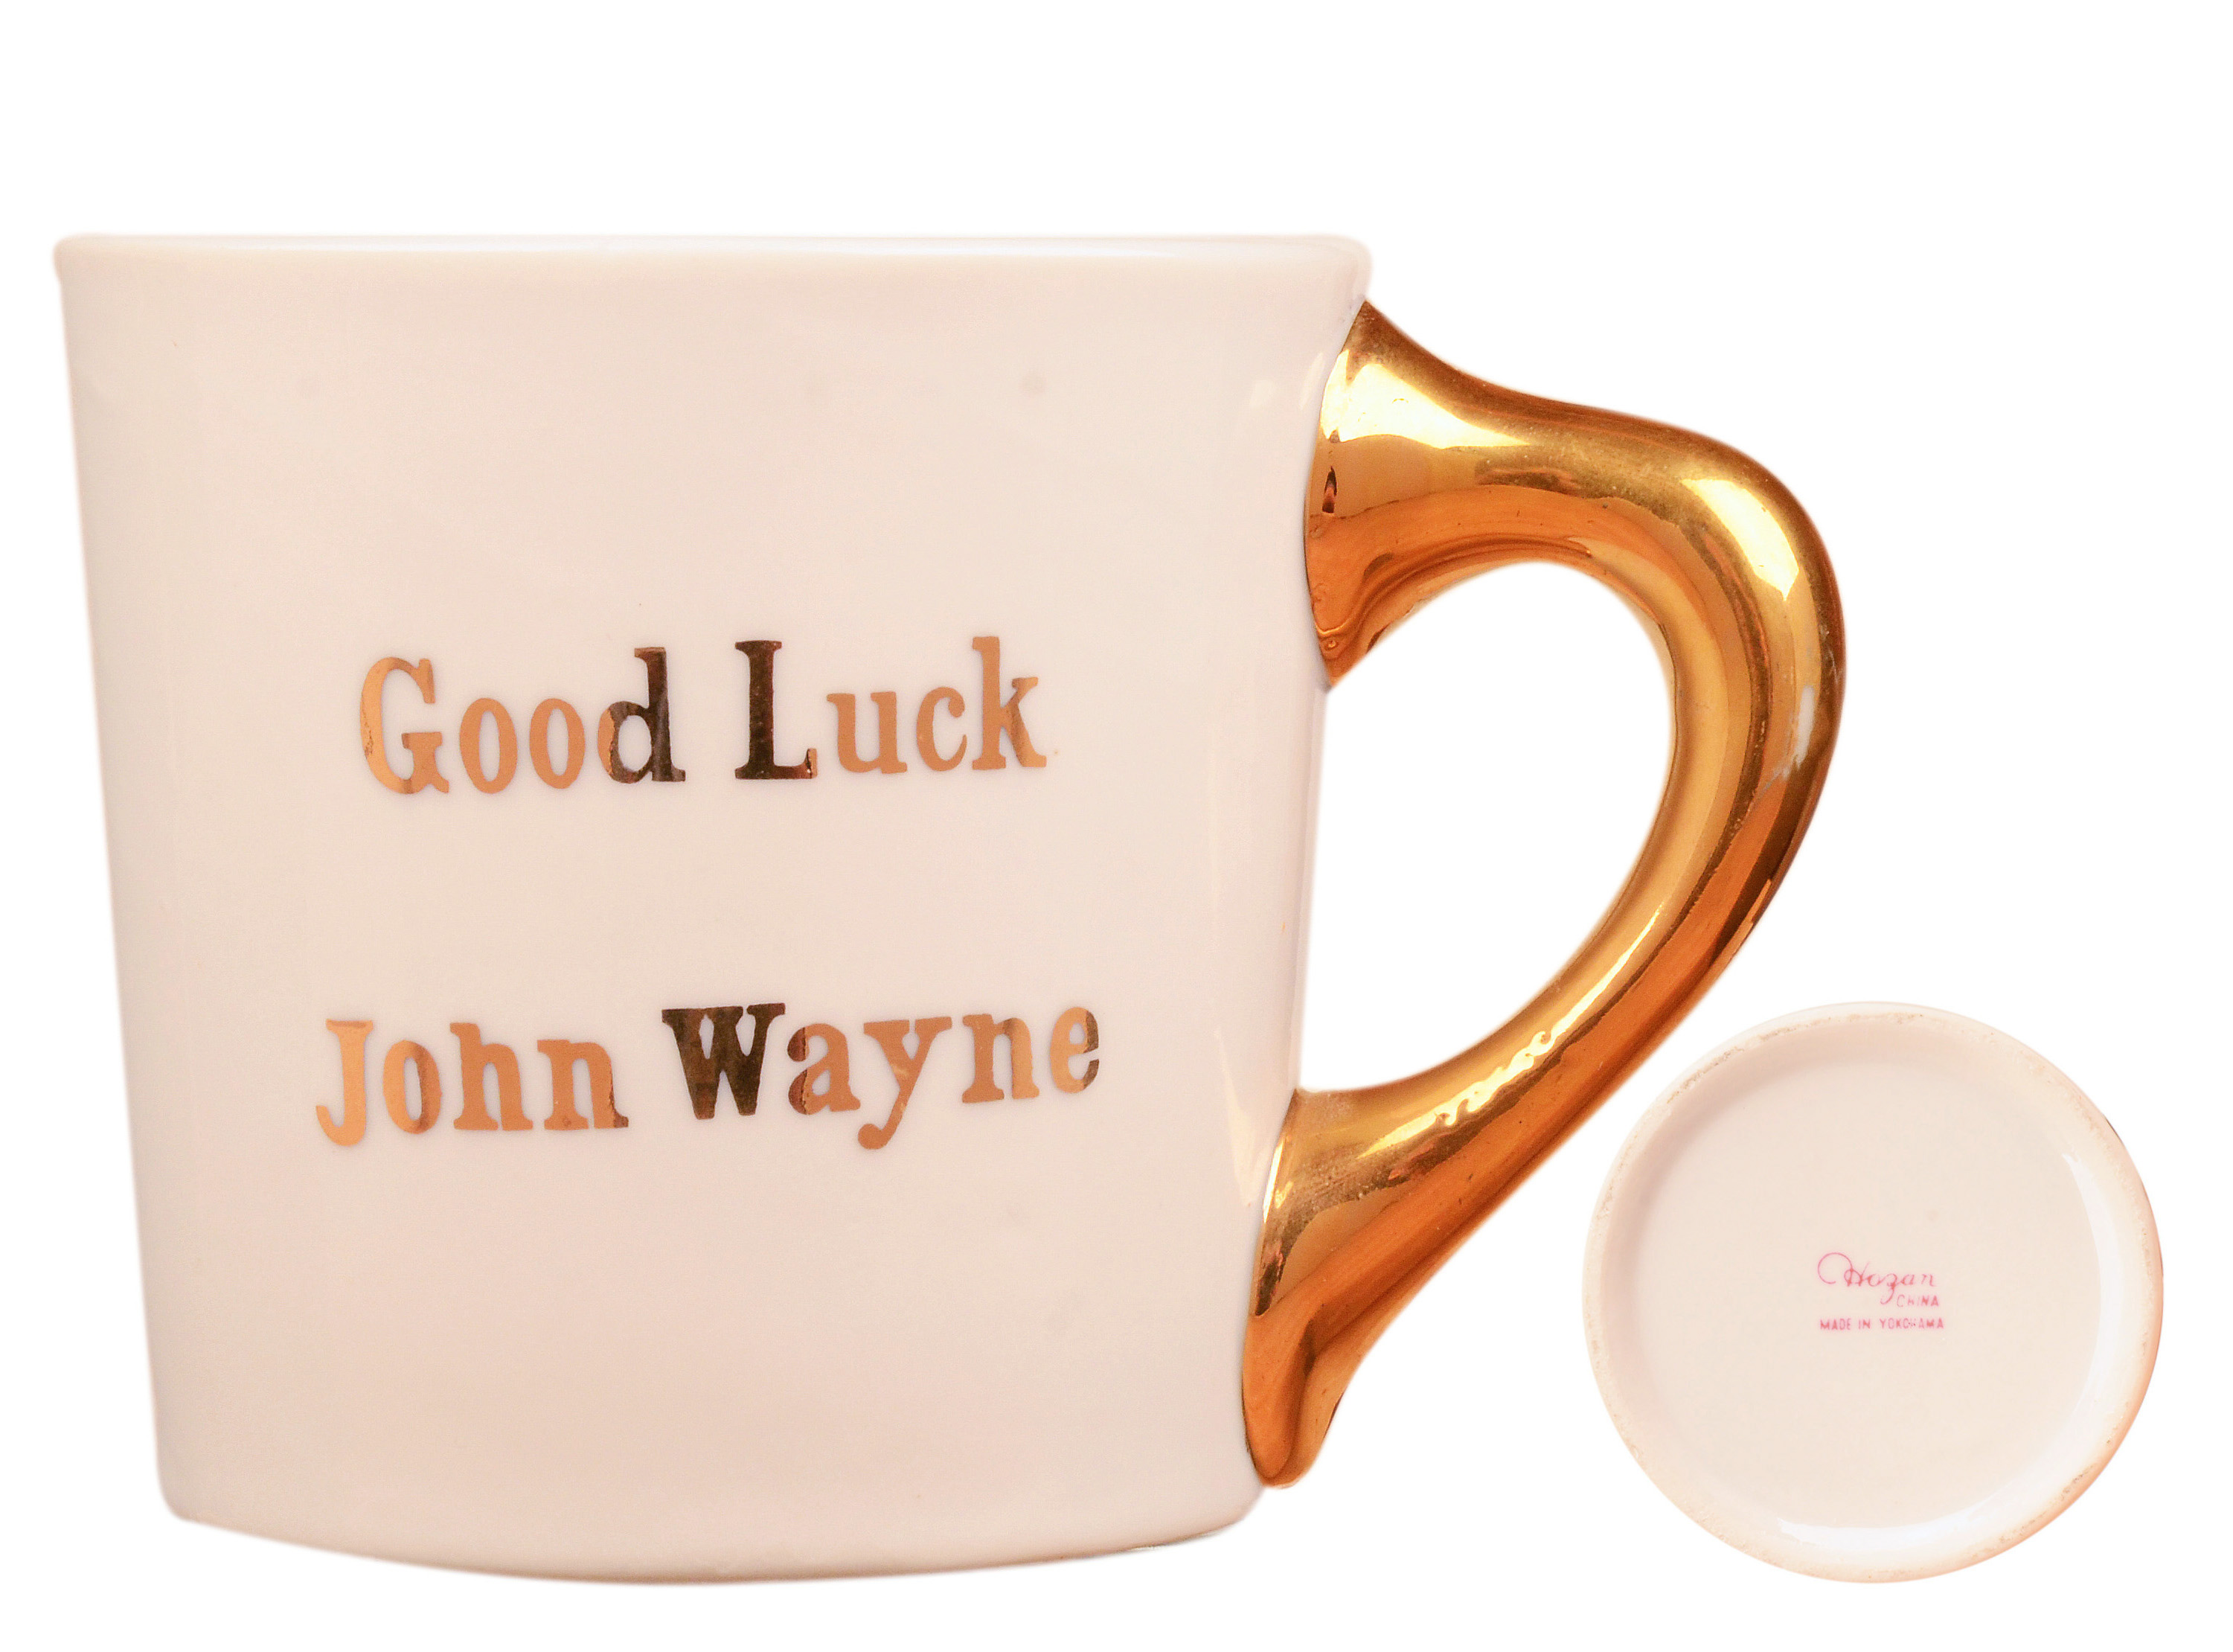 John Wayne mug for the 1964 movie Circus World, back.